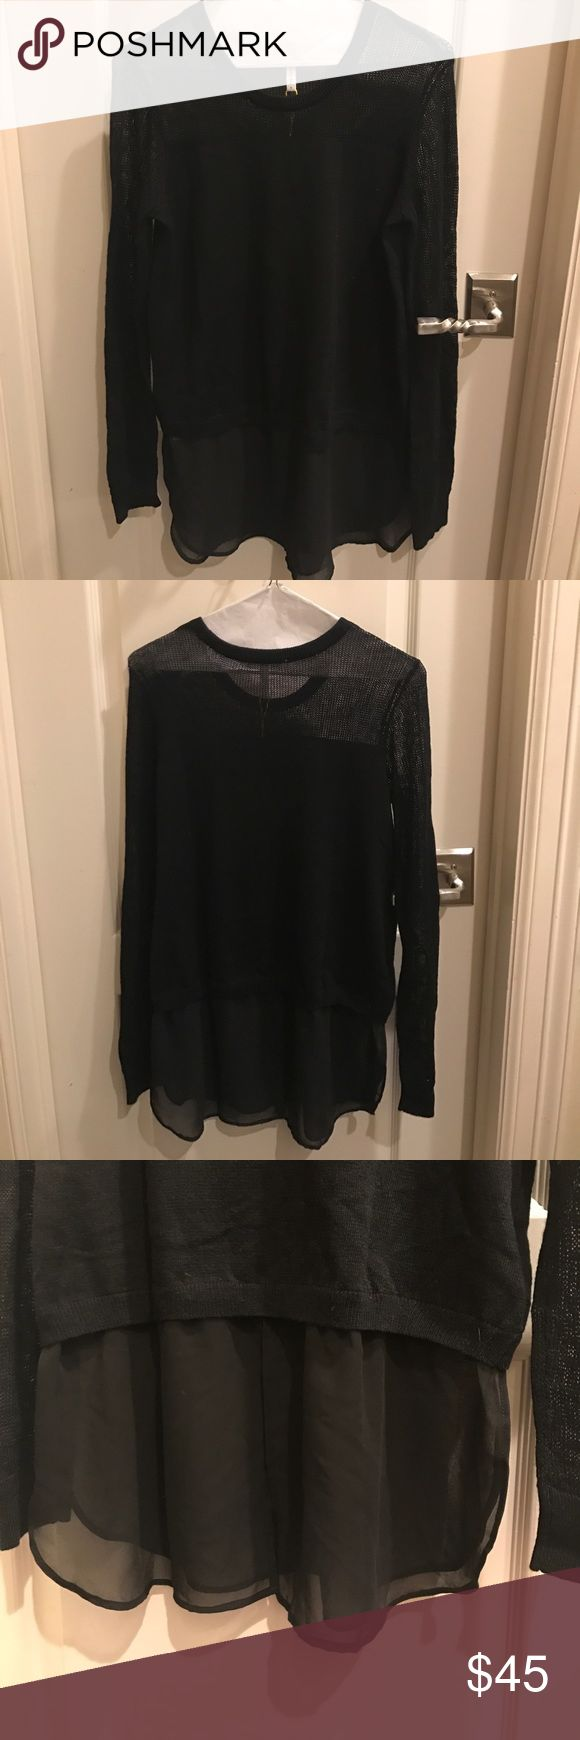 BCBG Black Sweater Size small. NWT. Sheer bottom. Super cute & edgy😊 BCBGeneration Tops Blouses